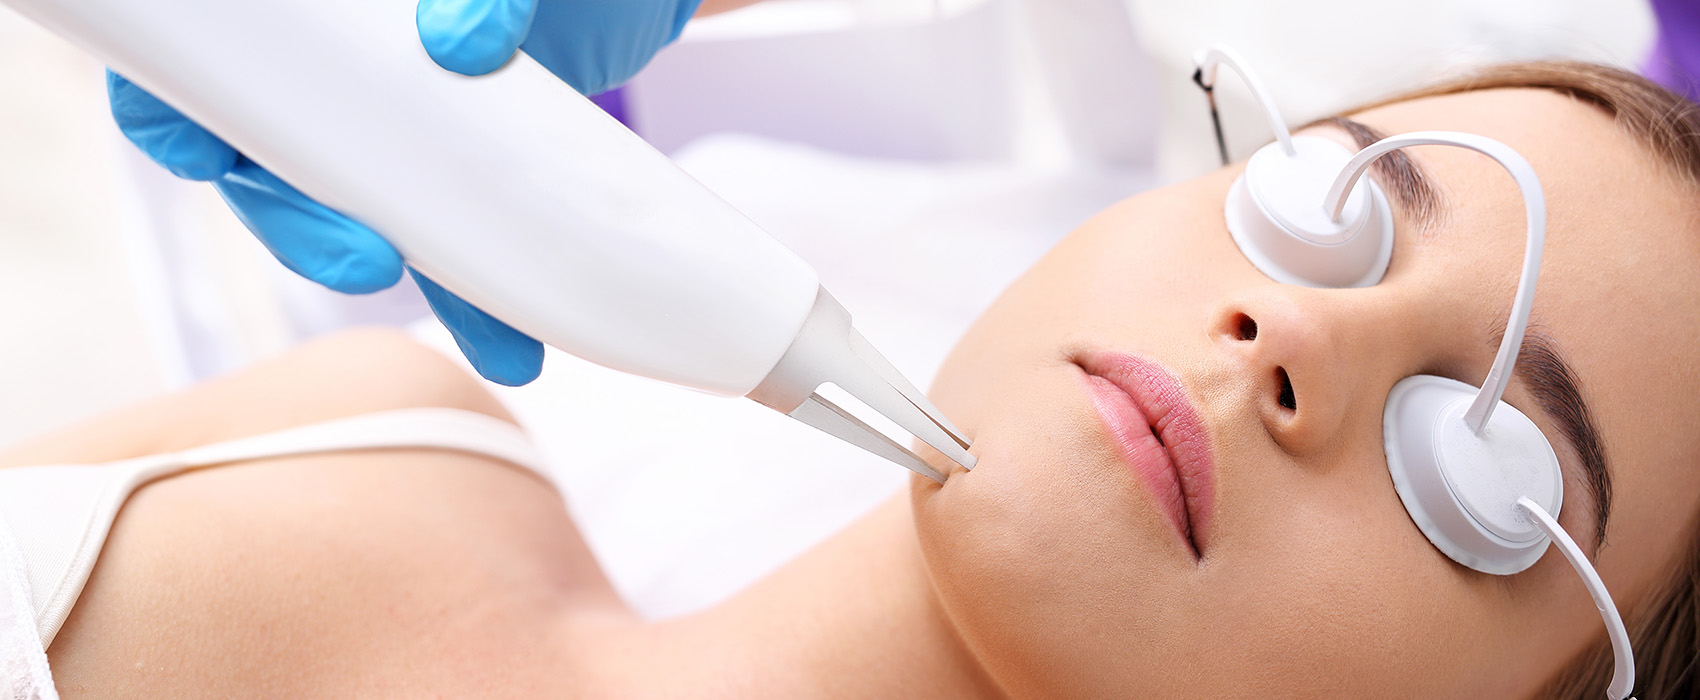 Aesthetic & Cosmetic Procedure Myths